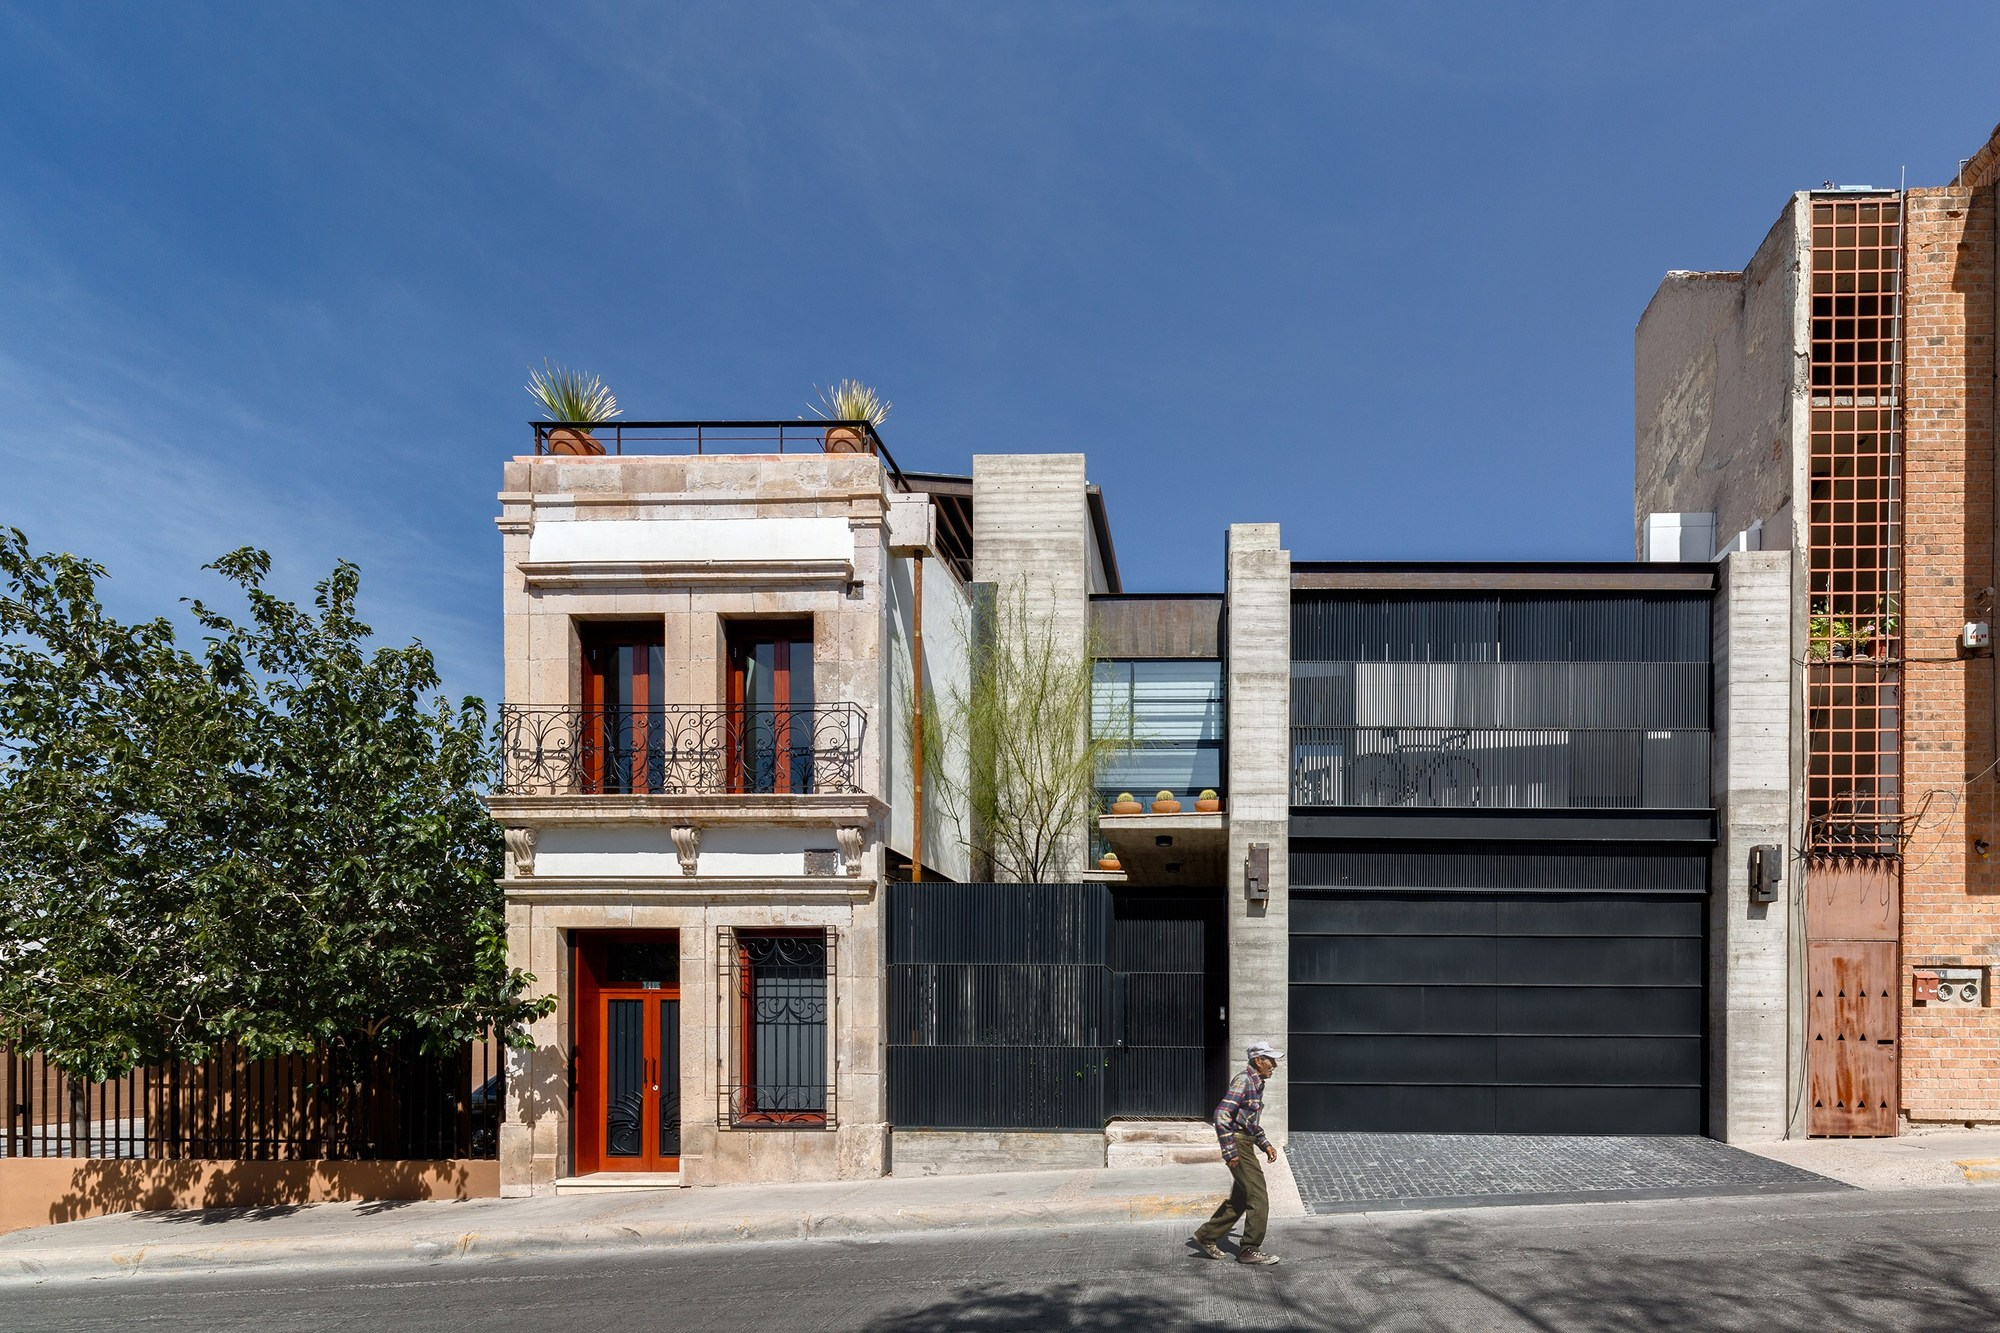 House On 2nd Street C2a Laborstudio Archdaily